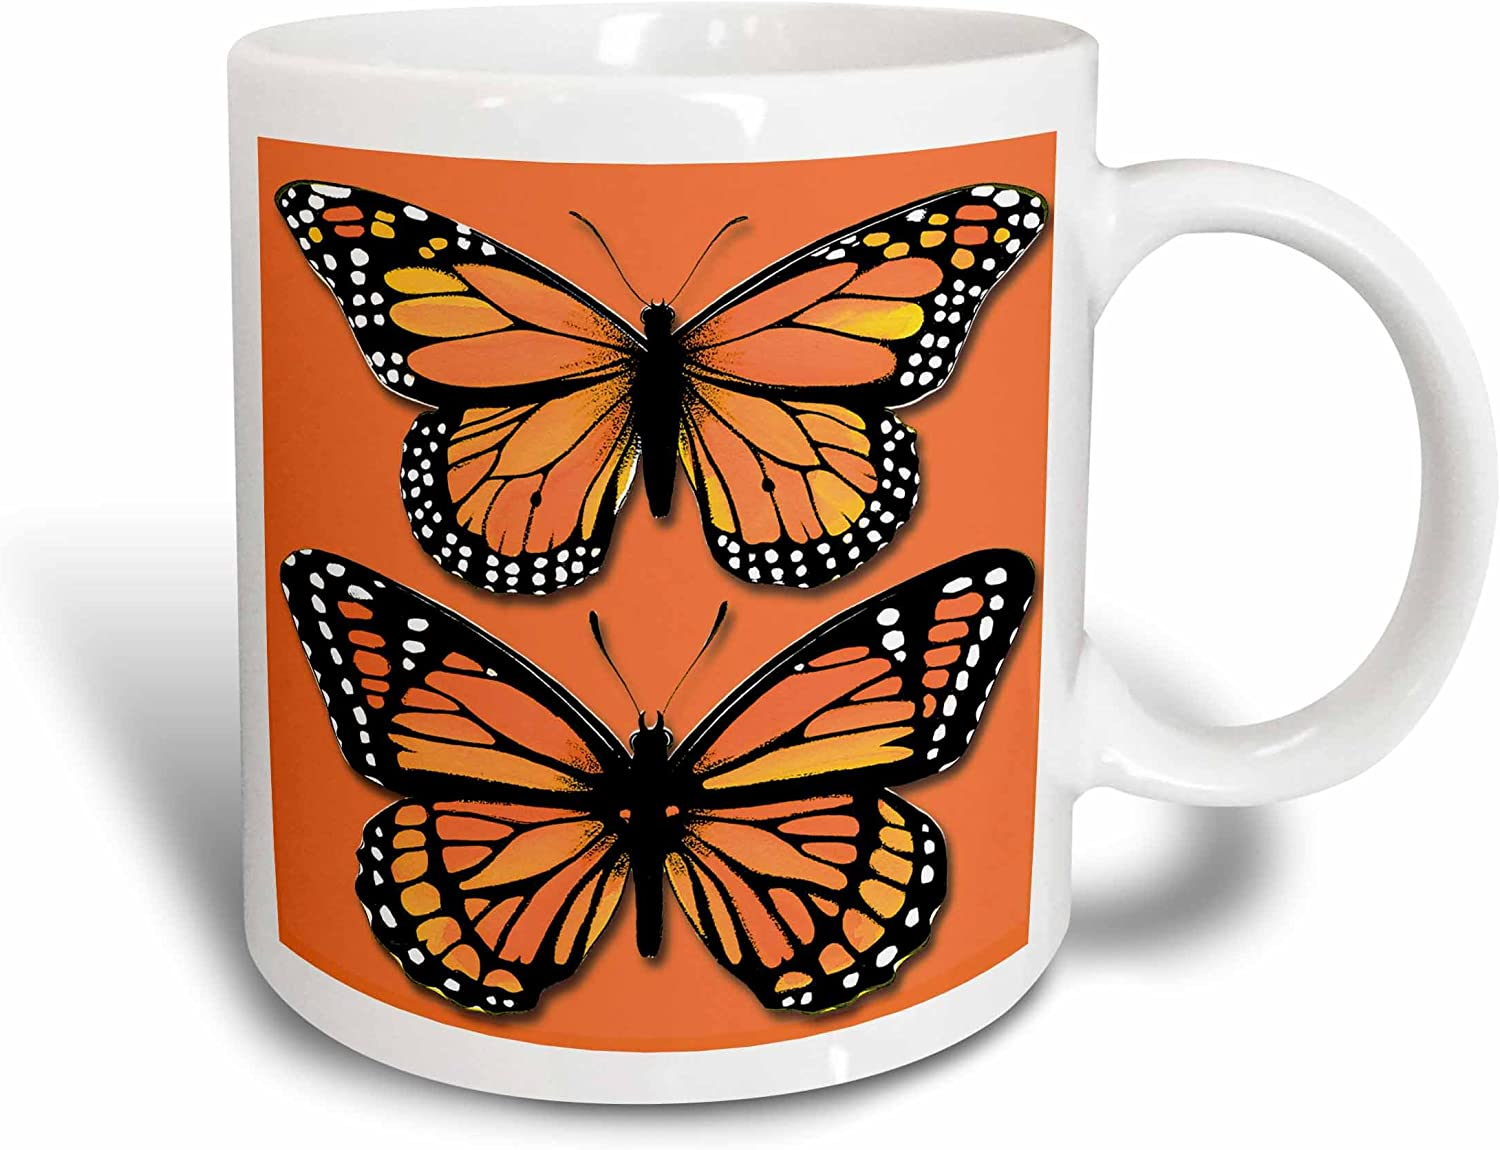 3dRose Two Colorful Monarch Butterflies On A Matching Orange Background Ceramic Mug, 11 oz, White